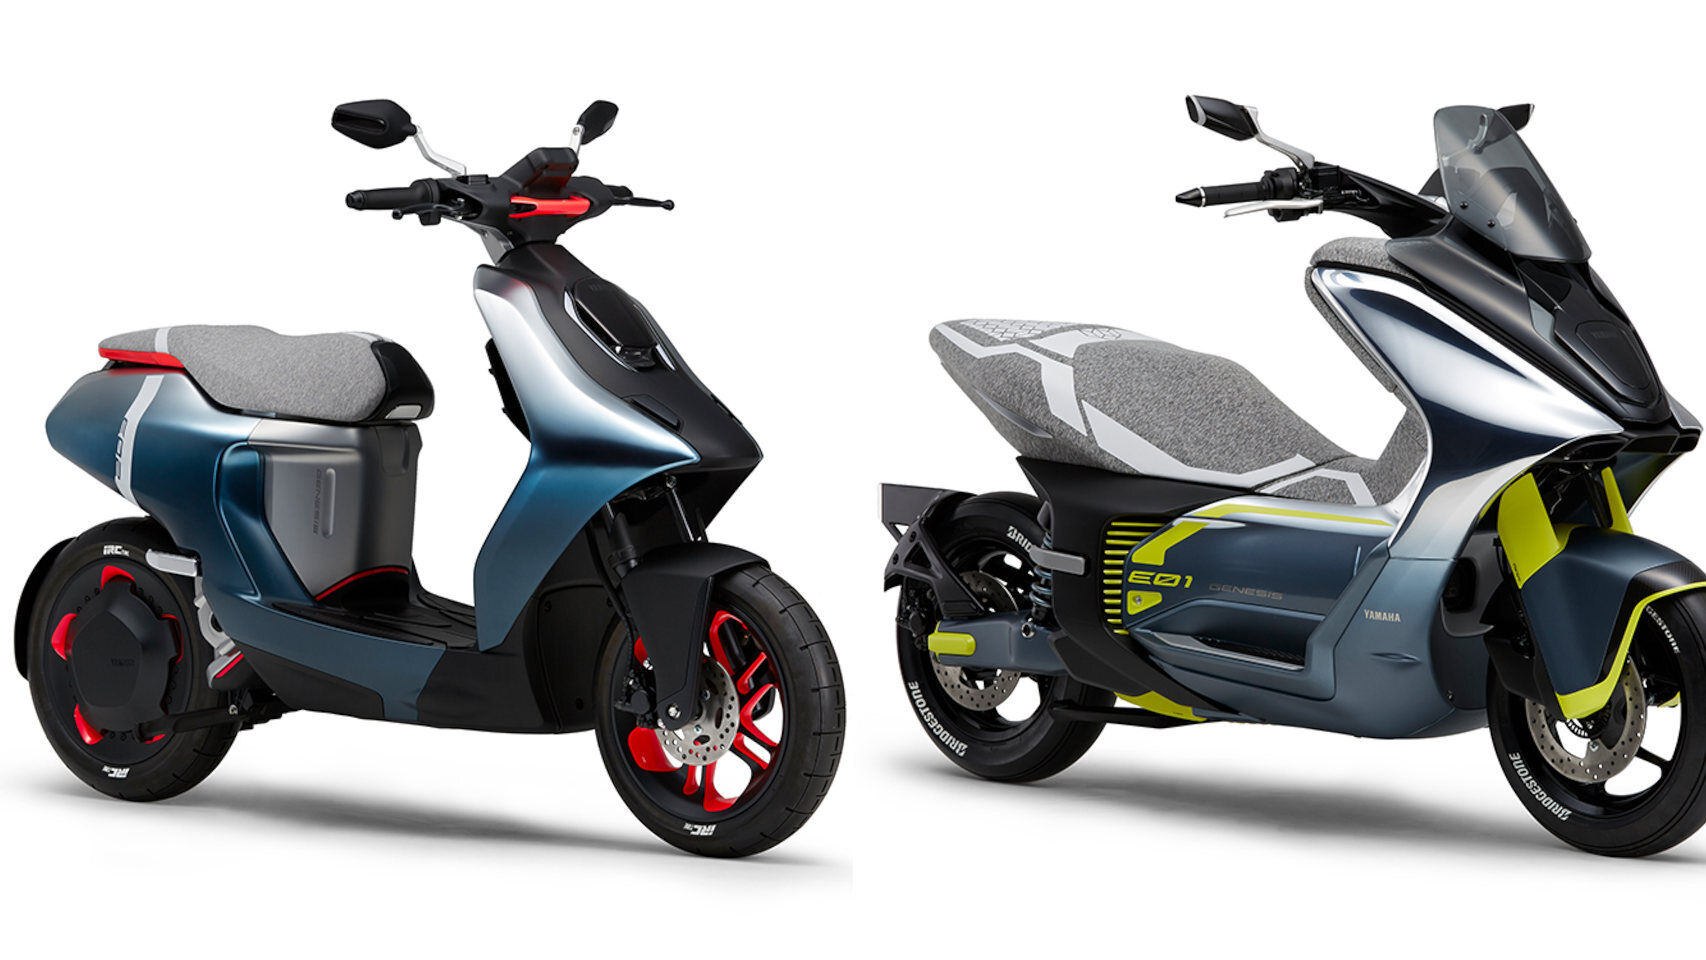 Yamaha presents the electric bikes and motorcycles that will be its future